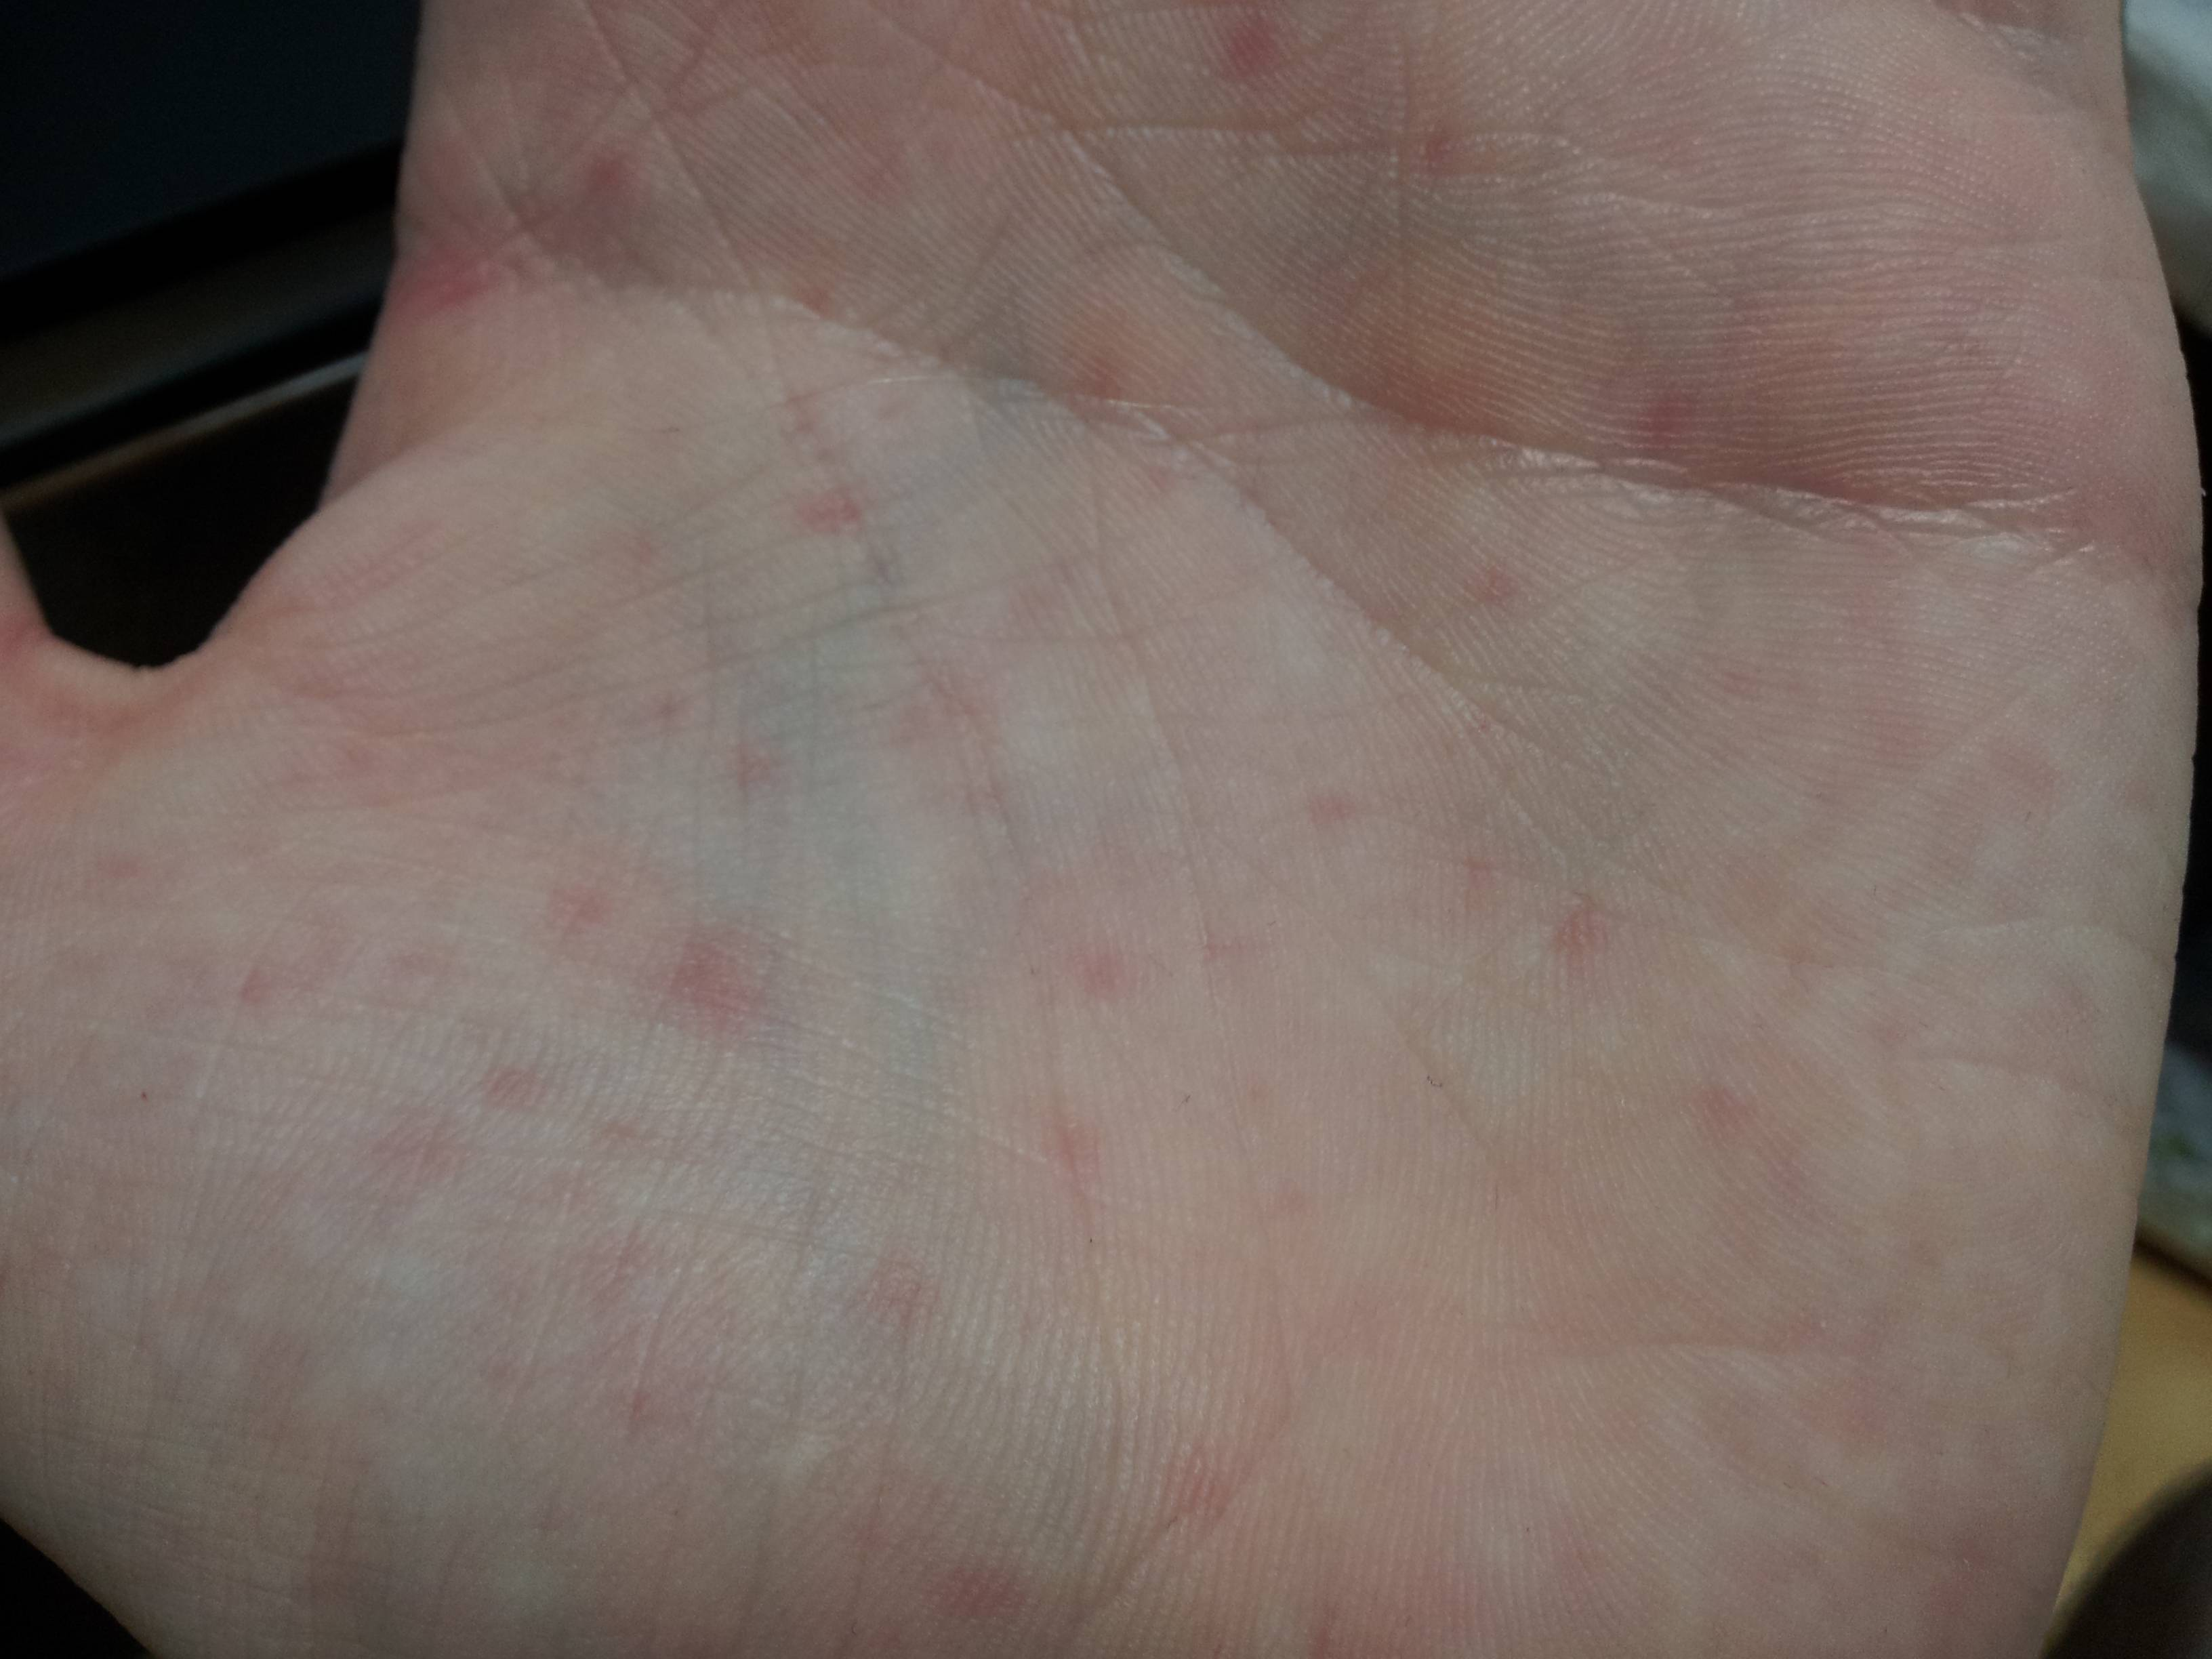 red spots on palms of hands